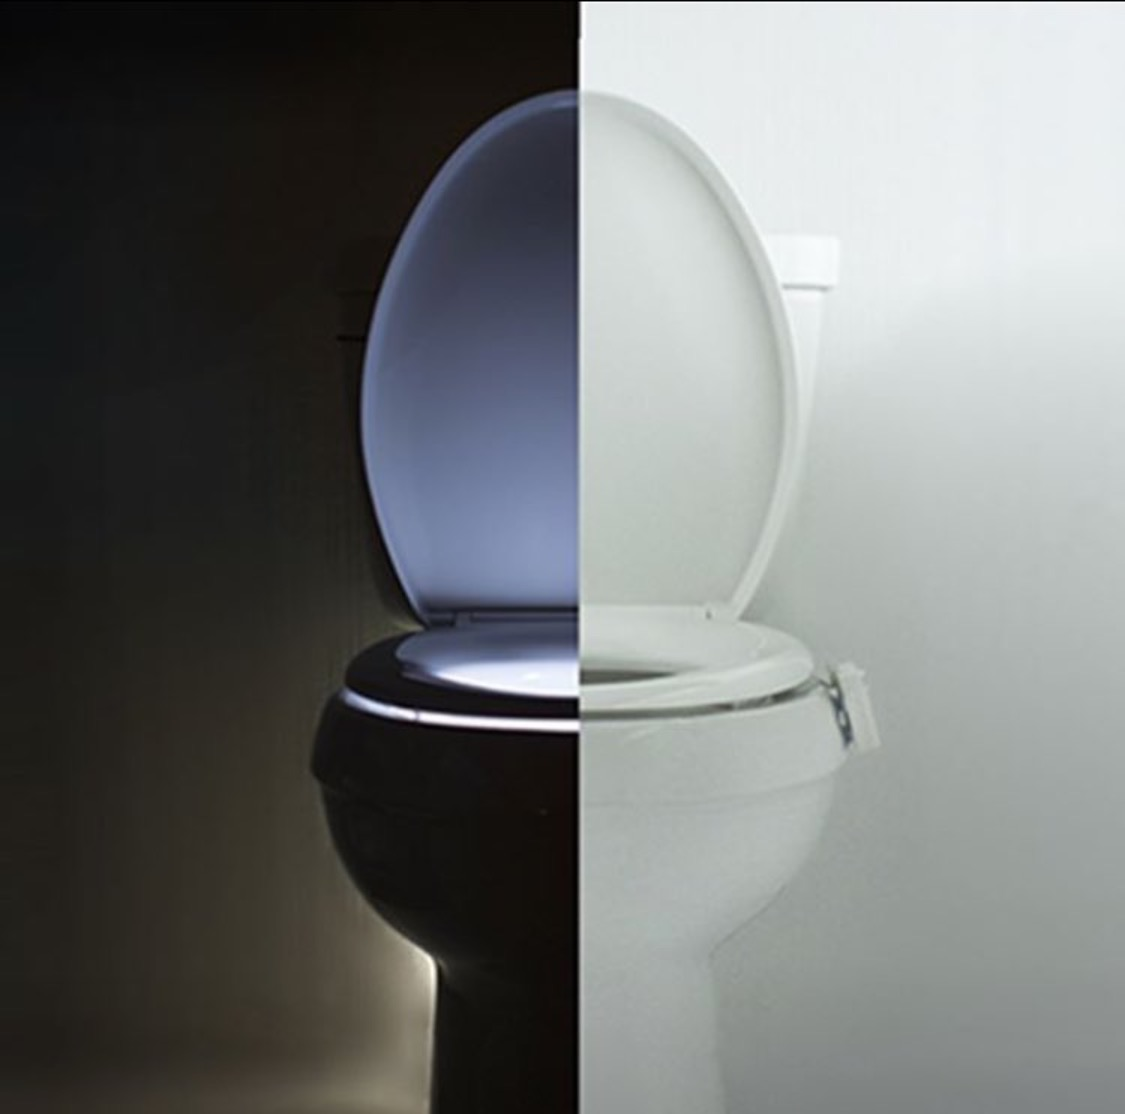 Illuminate your toilet seat in the coolest way possible